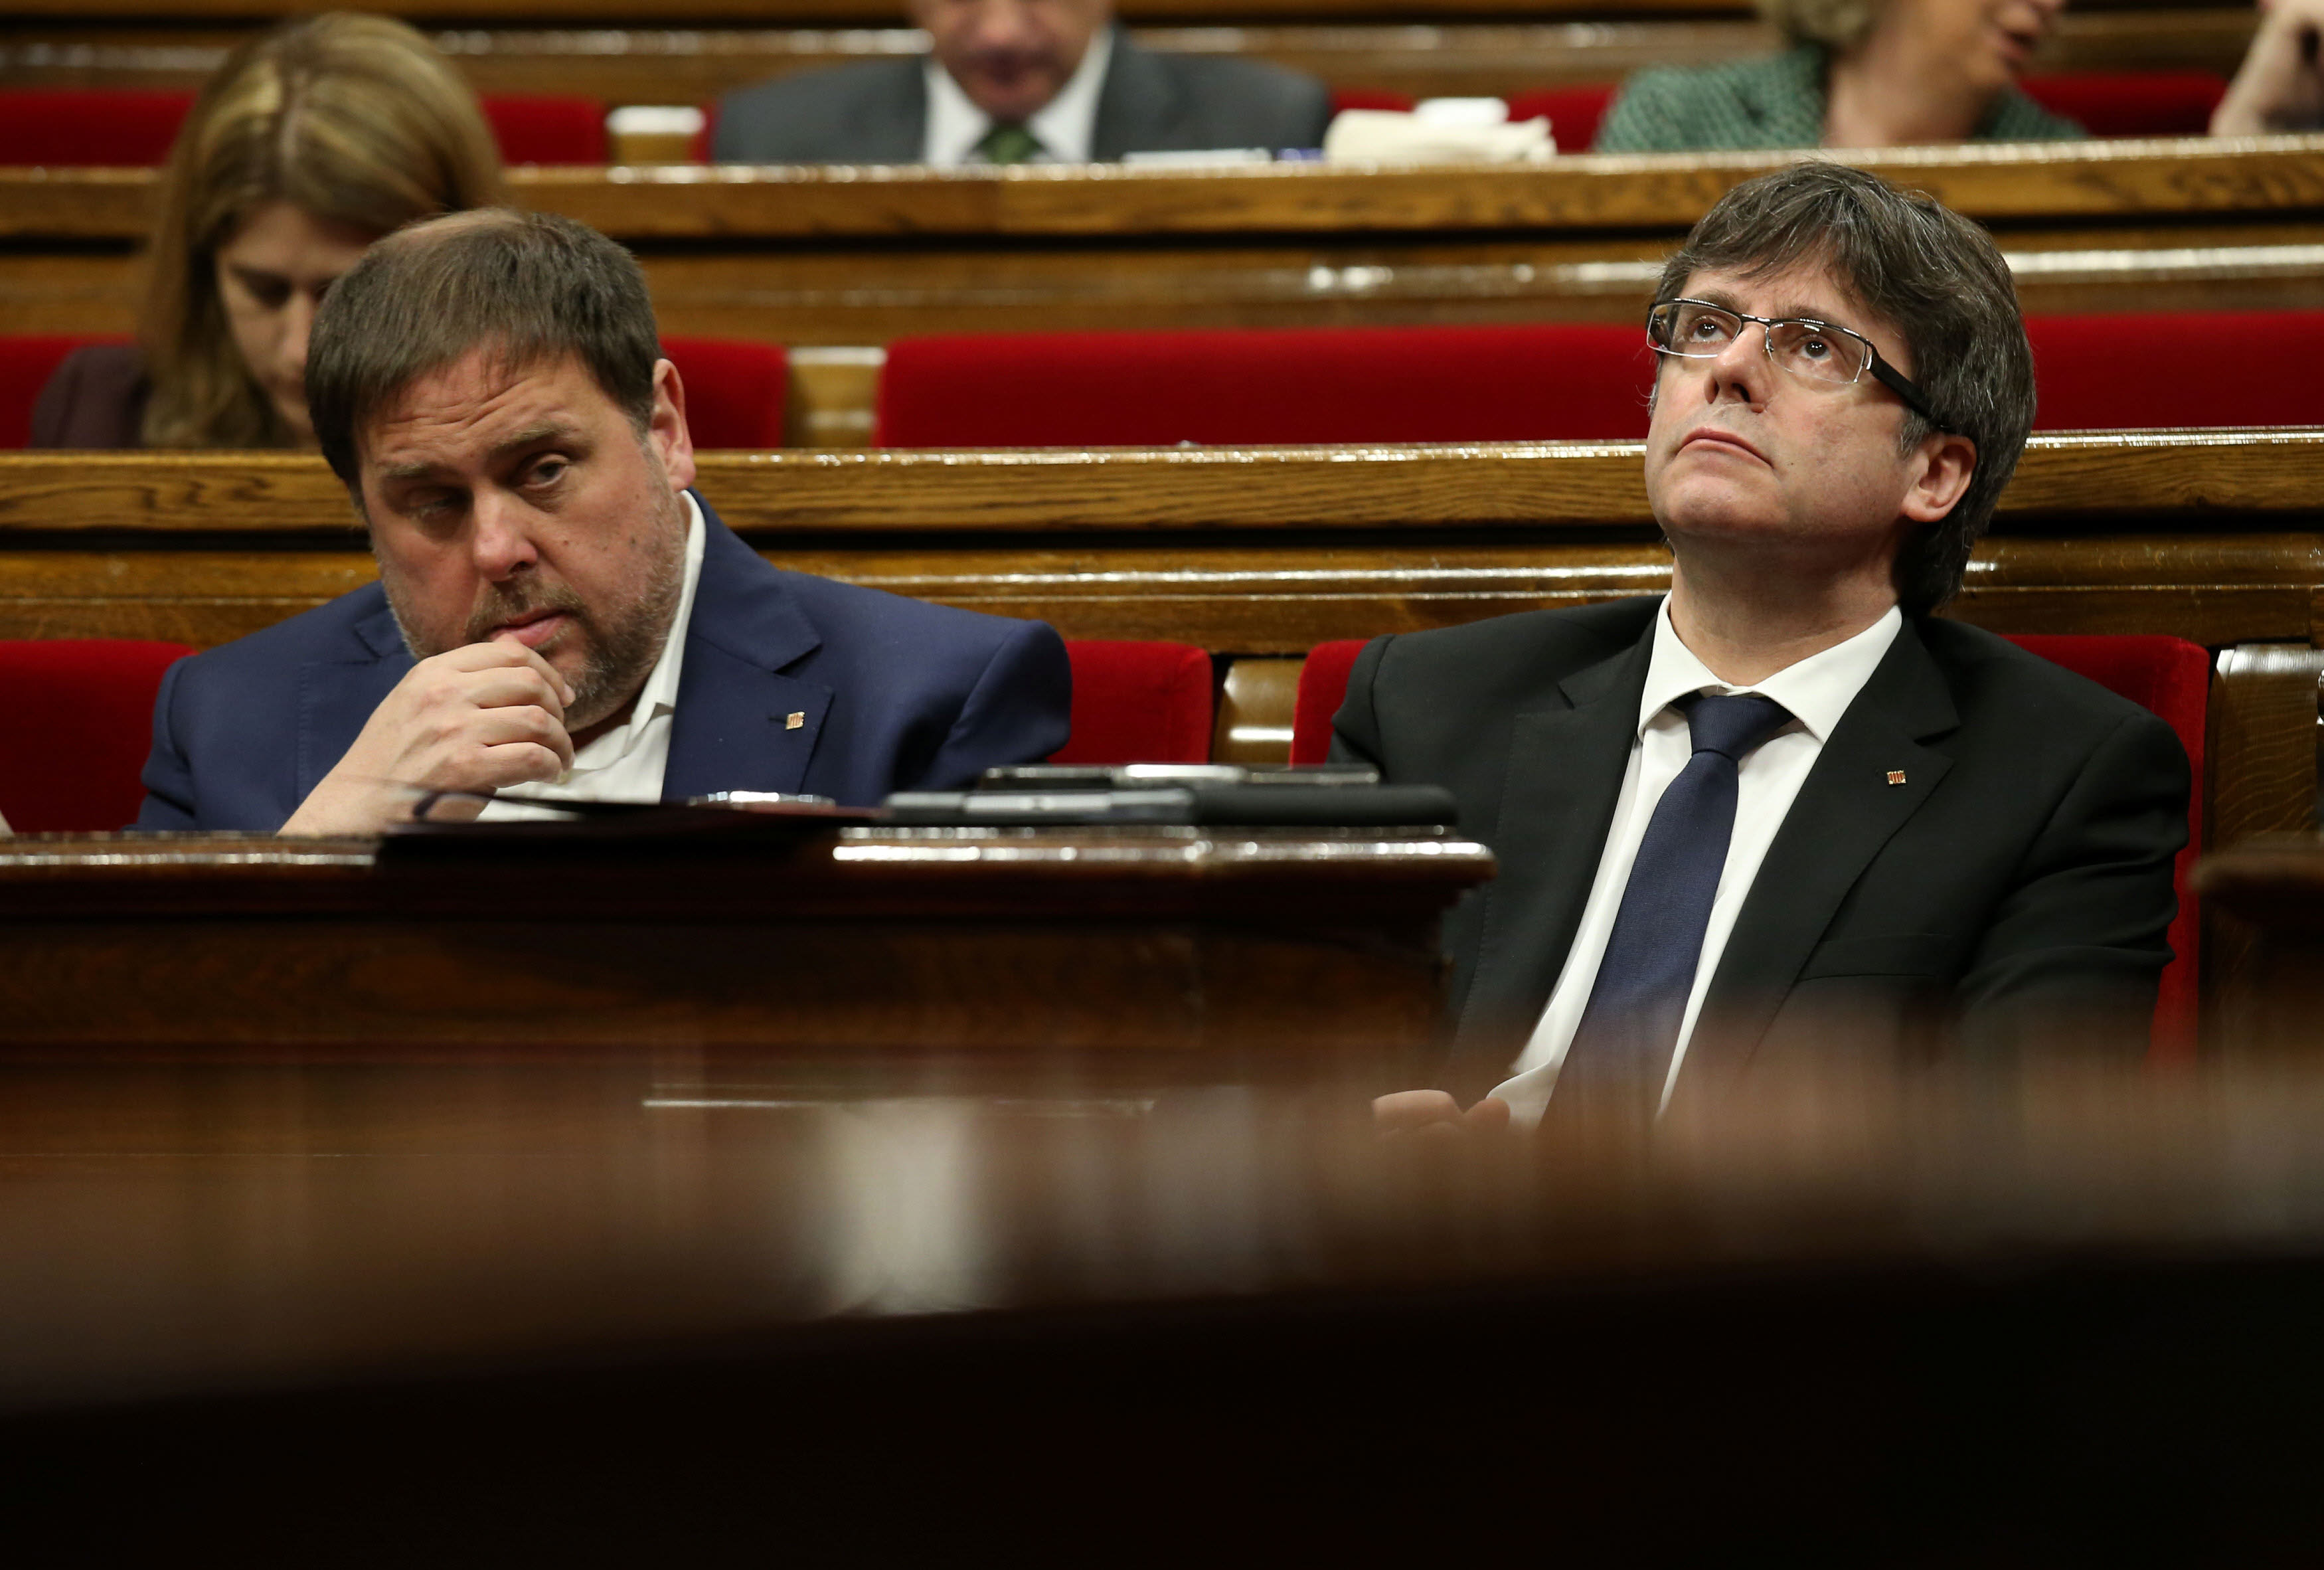 Catalonia's regional President Carles Puigdemont (R) and Economy Minister Oriol Junqueras attend a parliamentary session to vote on budgets, in Barcelona, Spain, March 22, 2017. REUTERS/Albert Gea